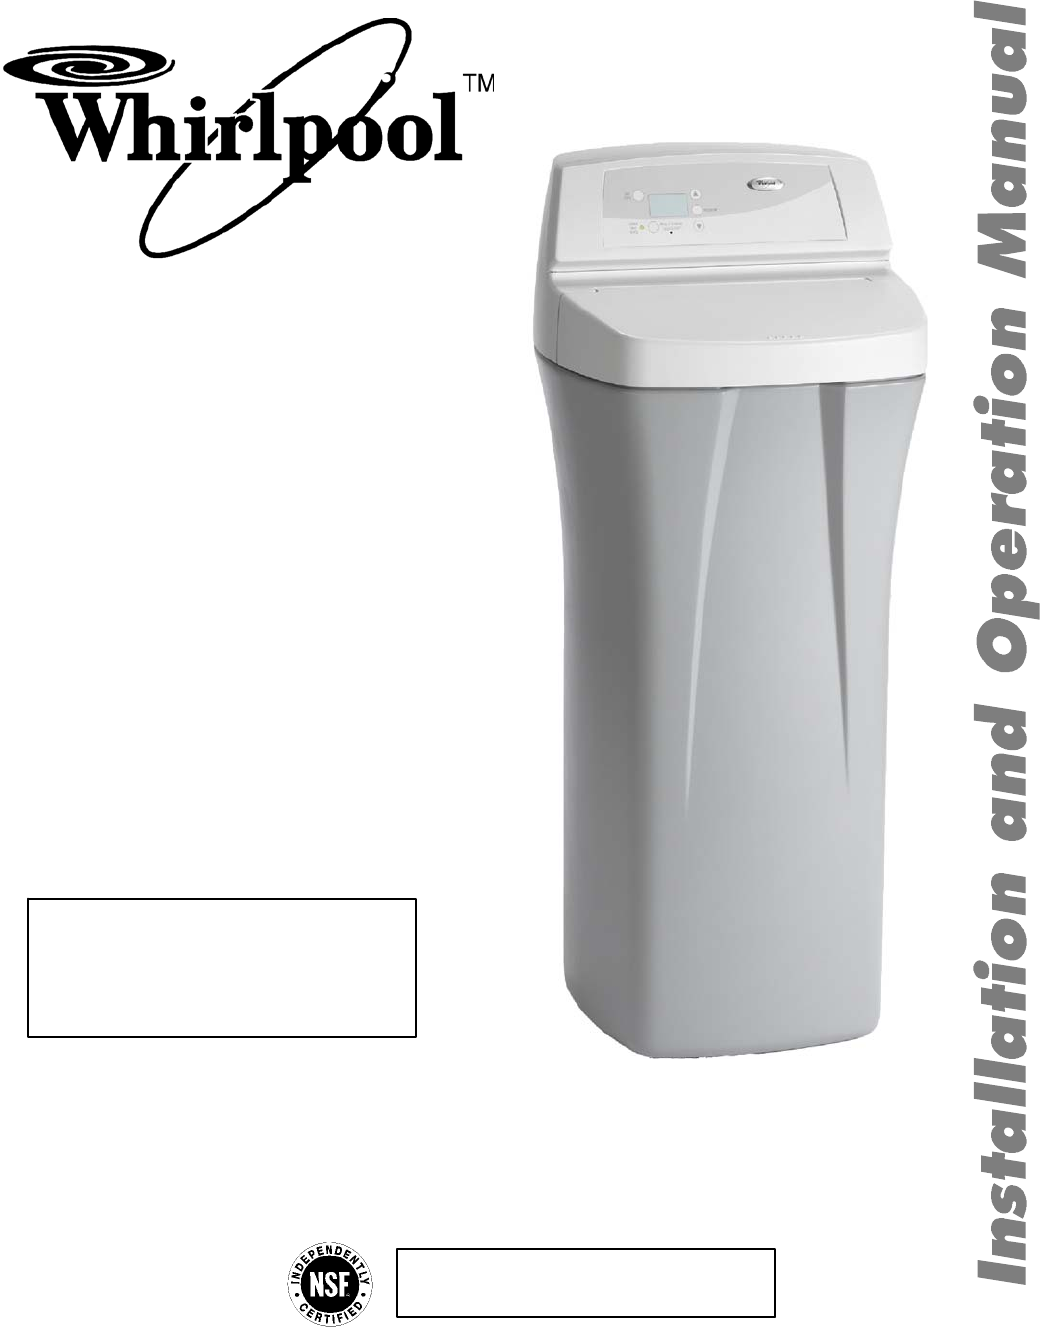 whirlpool water system whes30 user guide manualsonline com rh kitchen manualsonline com Whirlpool WHES40 Water Softener Whirlpool Water Softener Problems